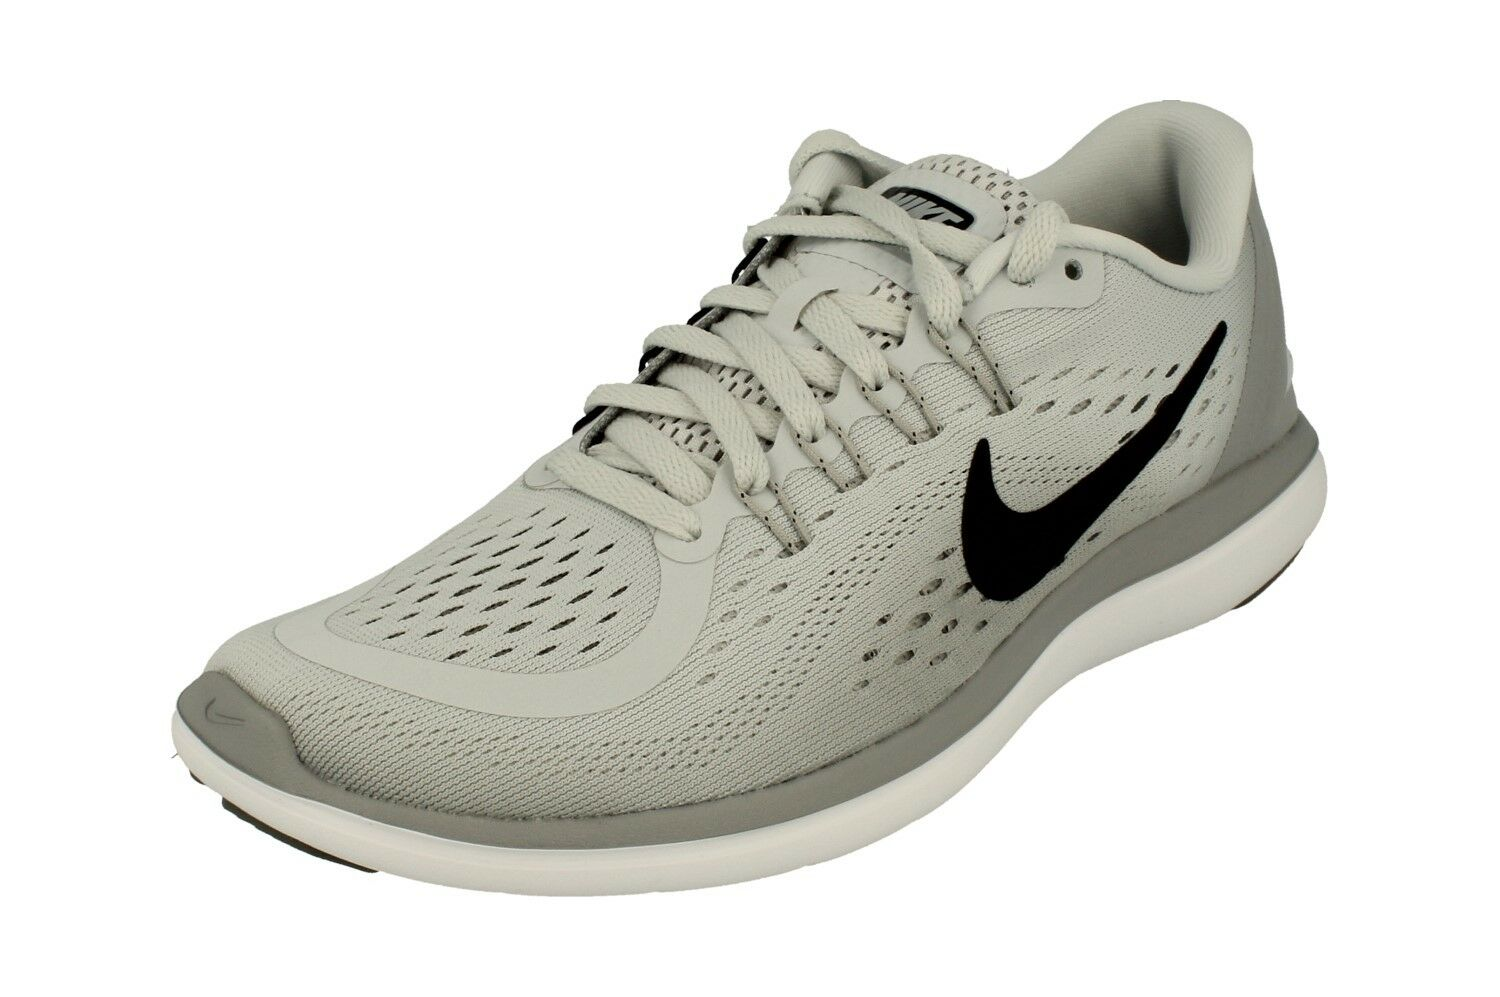 Nike Femmes Flexible 2017 Rn Basket Course 898476 Baskets 002